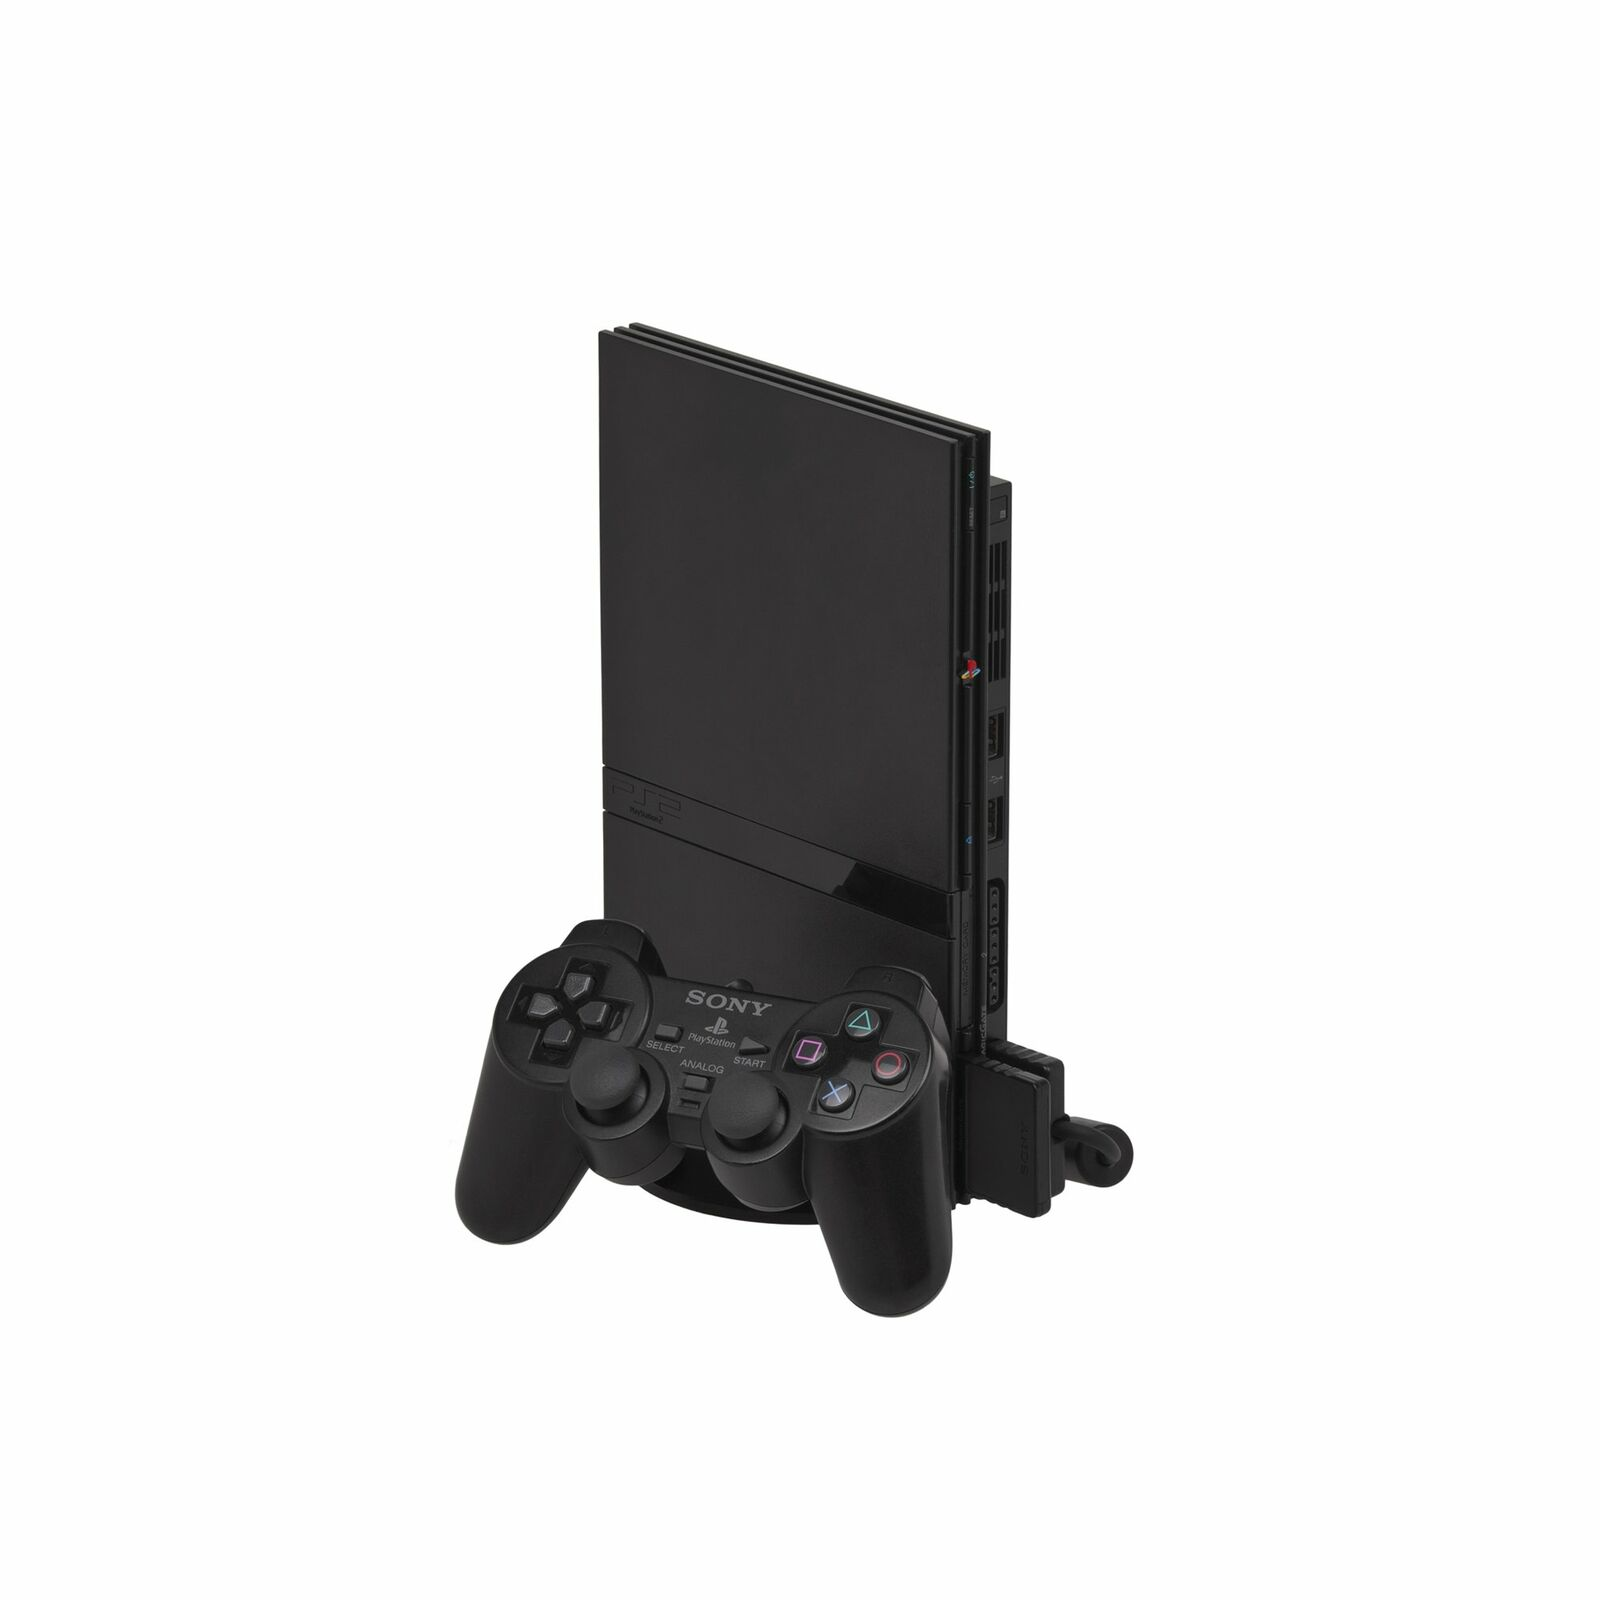 Sony PlayStation 2 PS2 Slim Console Black with Compatible Controller